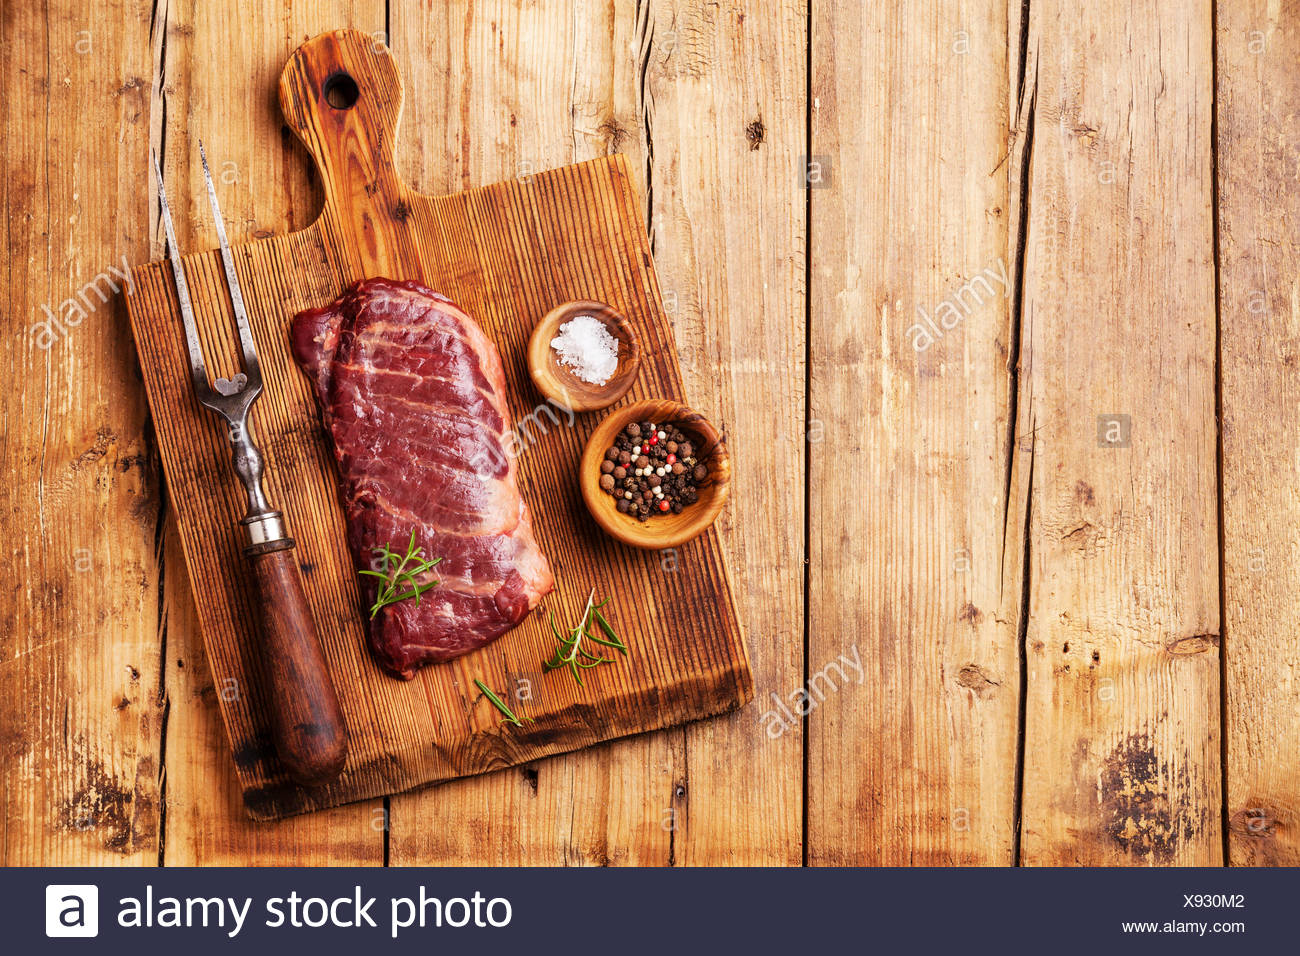 Raw fresh meat Steak Machete with salt and pepper on wooden background - Stock Image